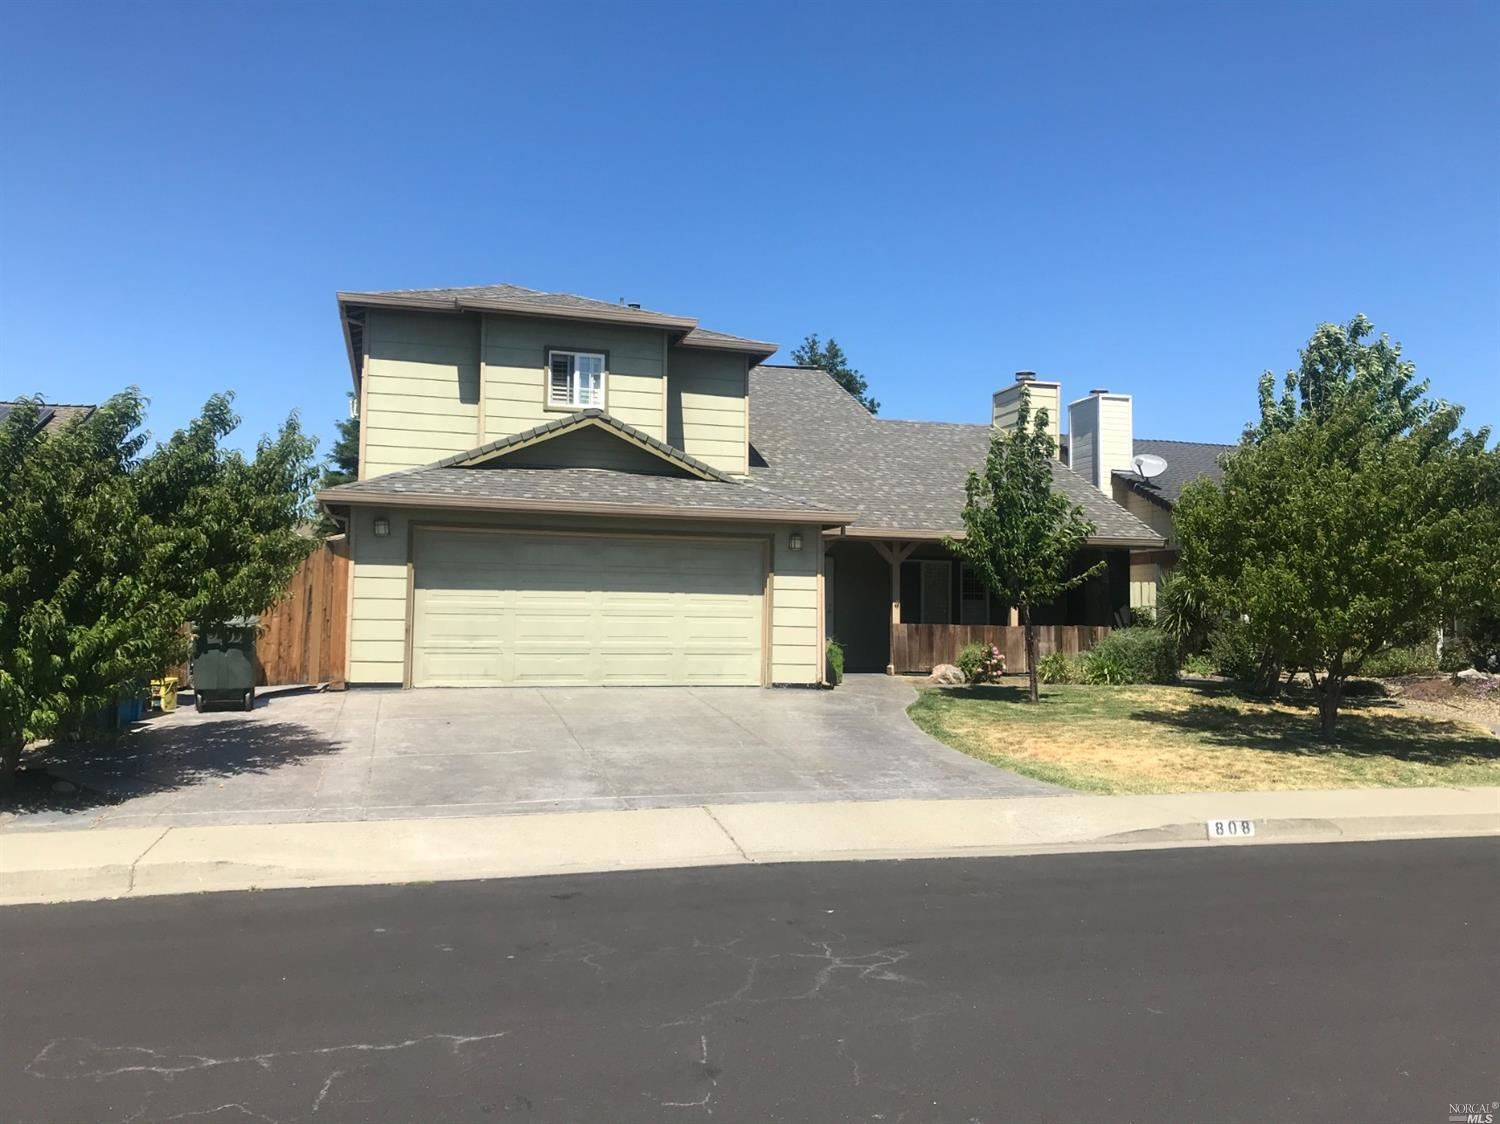 808 Saddle Horn Trail, Vacaville, CA 95687 - MLS#: 321059997